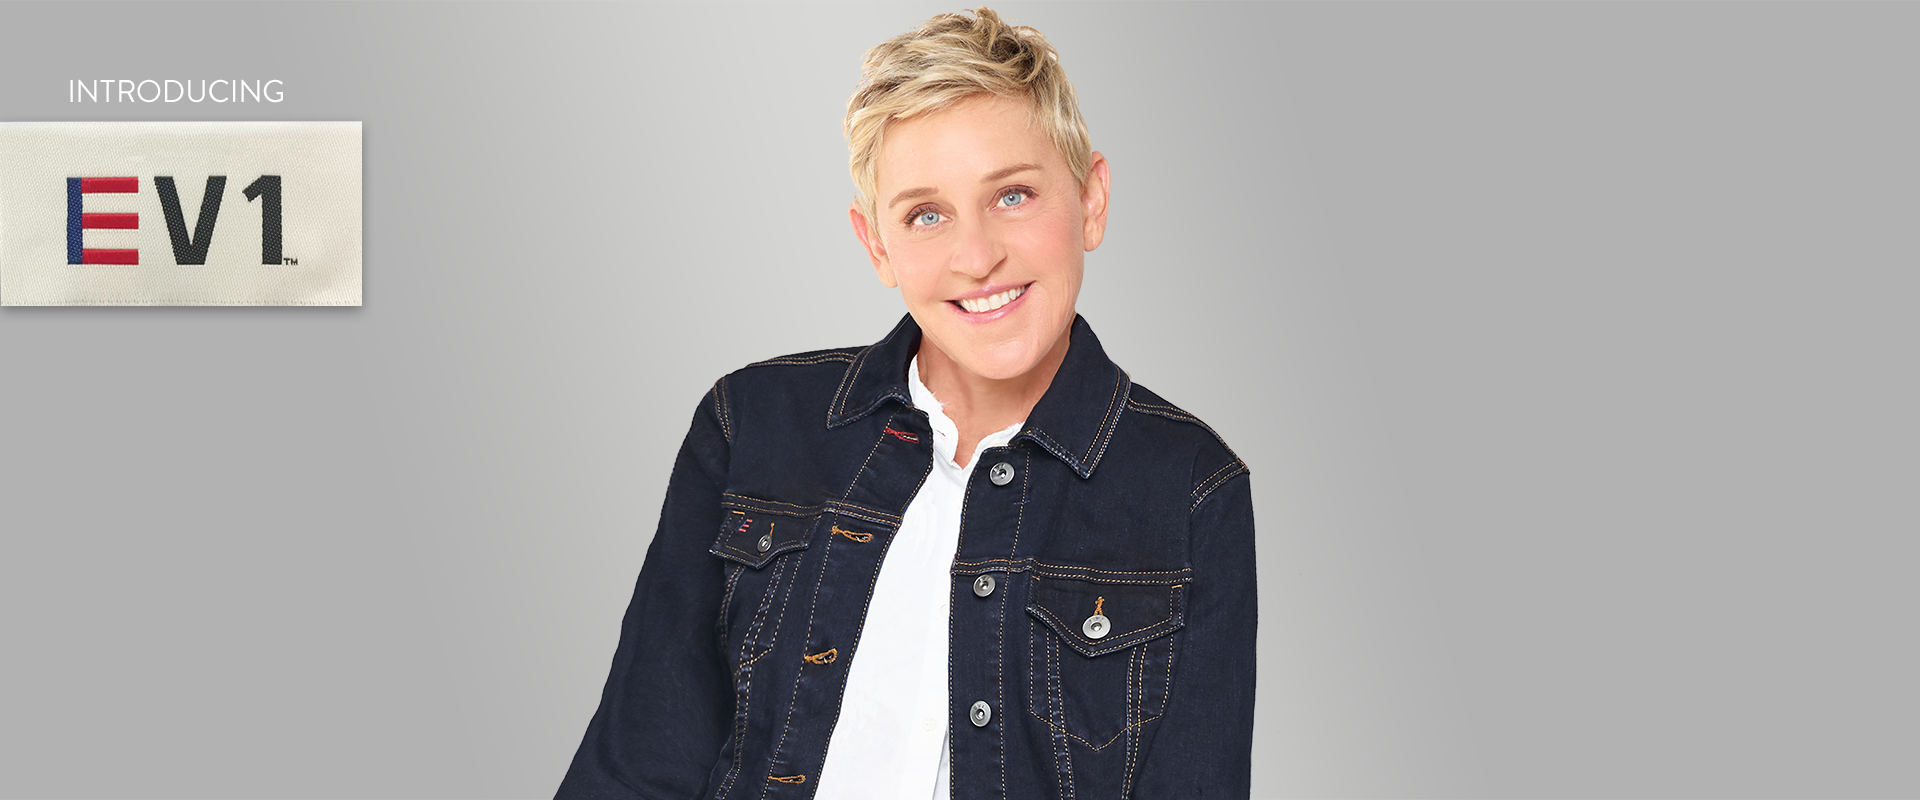 Ellen Degeneres is launching a fashion line with Walmart